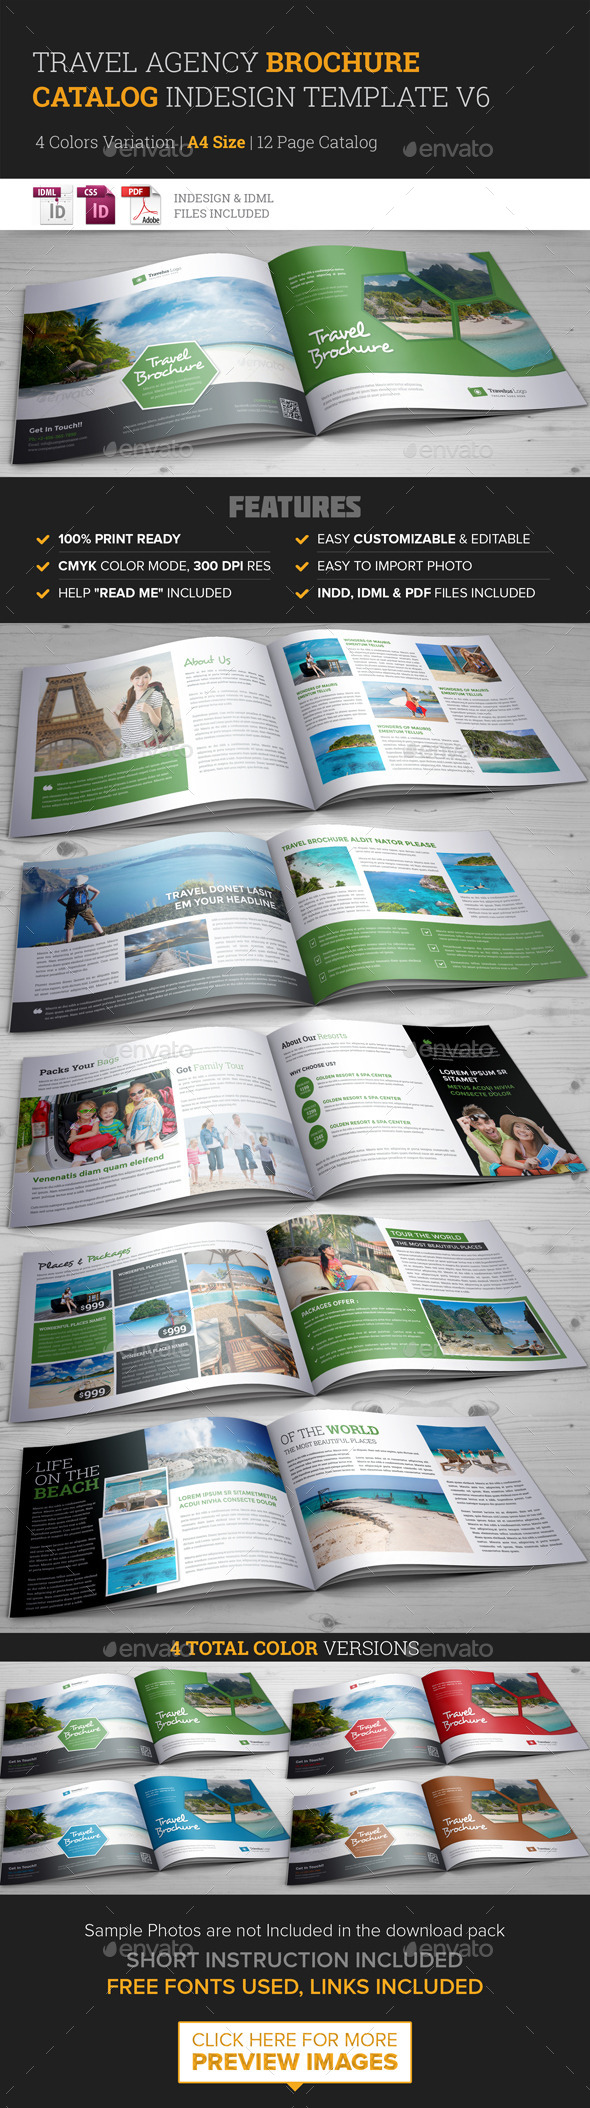 Print template graphicriver travel agency brochure for Travel agency brochure template